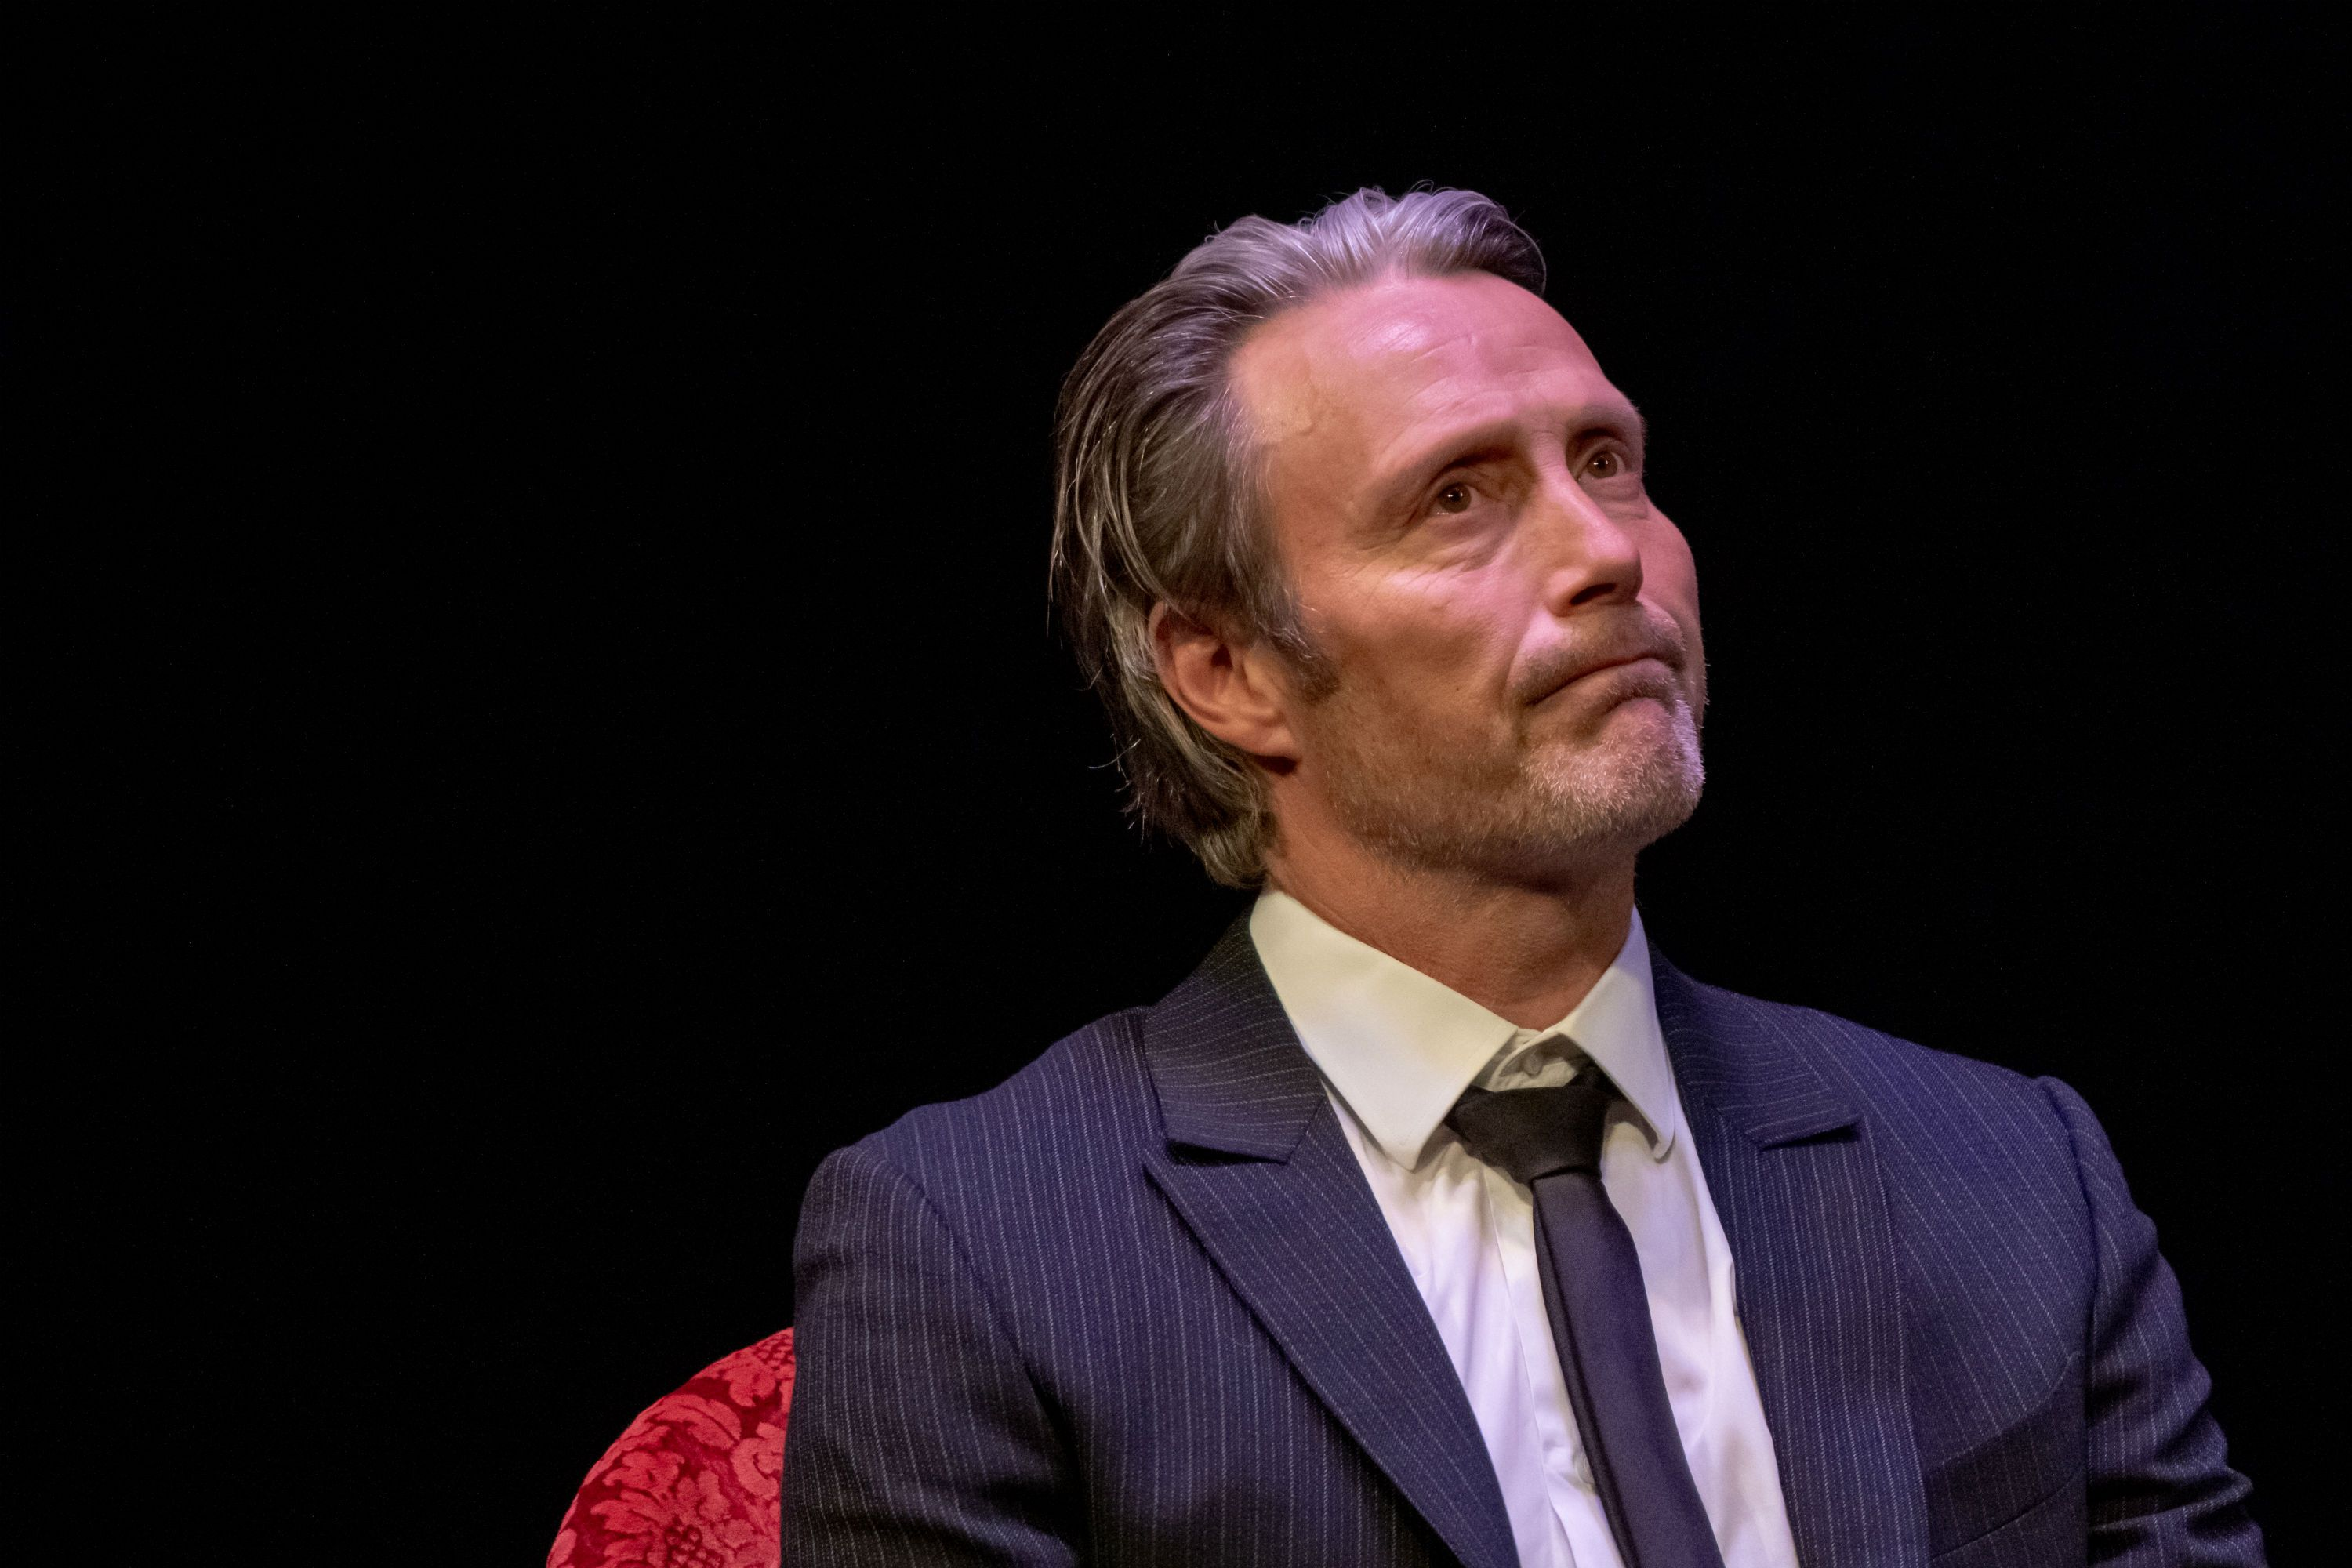 Hannibal star Mads Mikkelsen's Netflix movie is dropped suddenly for unexpected reason